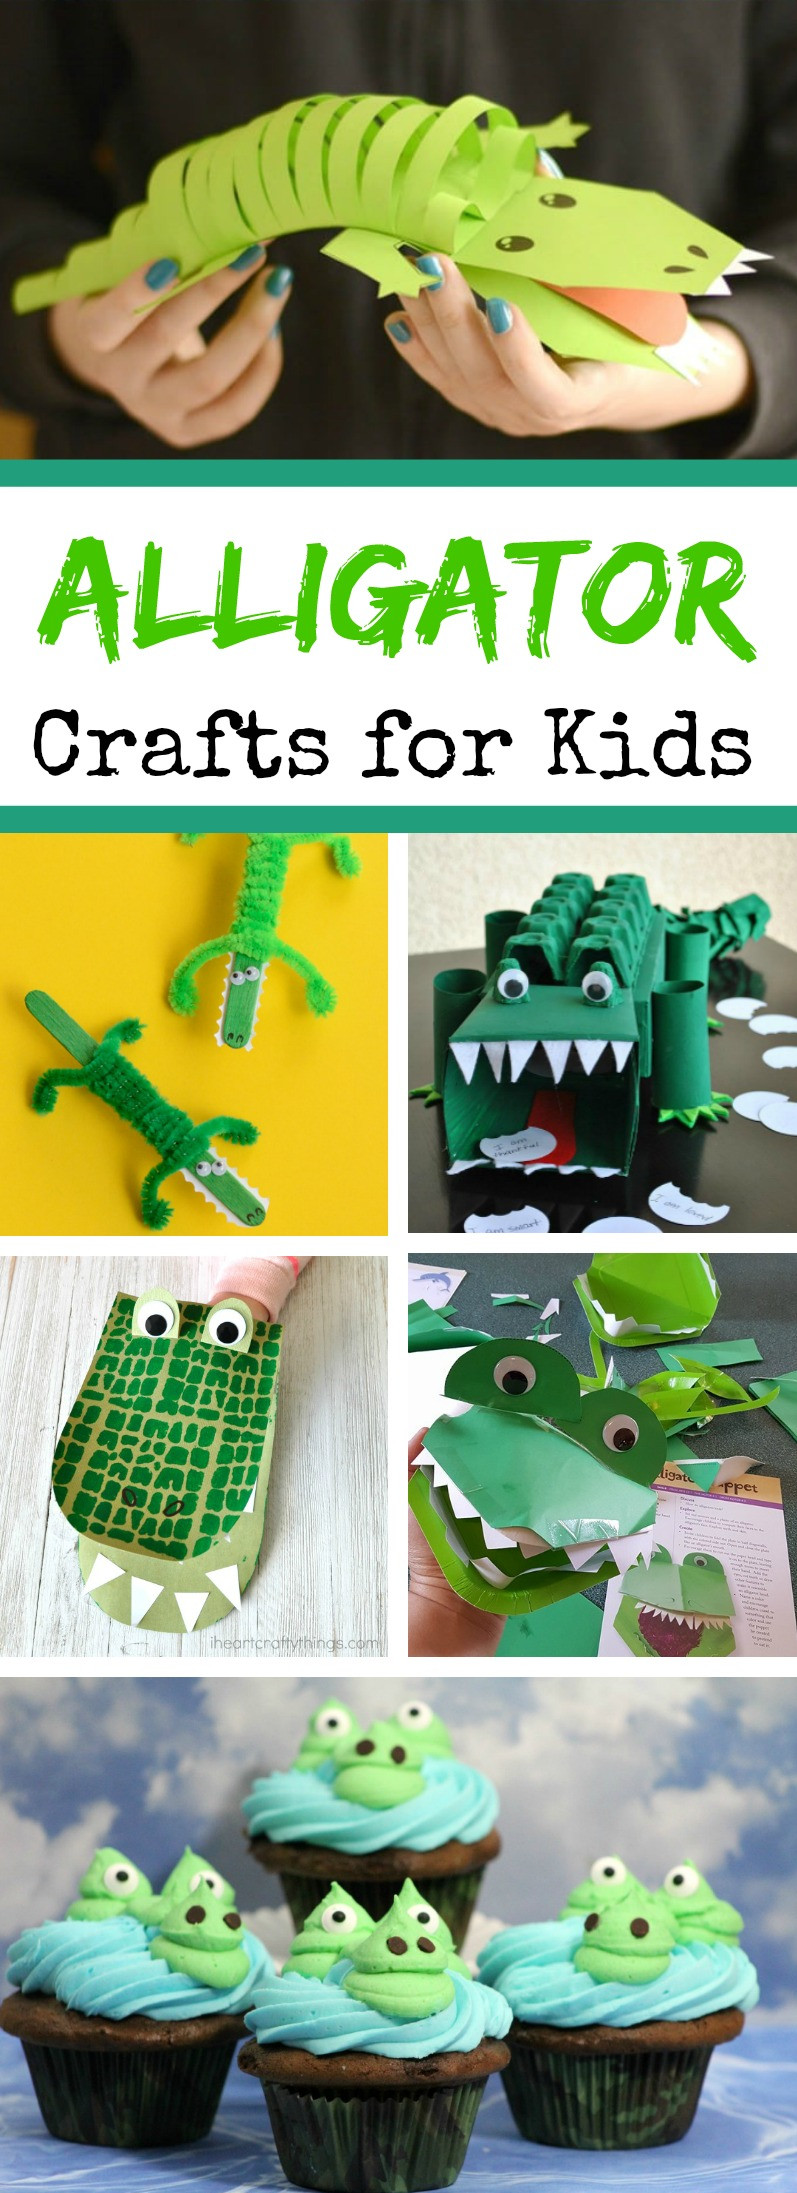 Craft Project For Toddler  Alligator Crafts for Kids 8 Exciting Alligator Craft